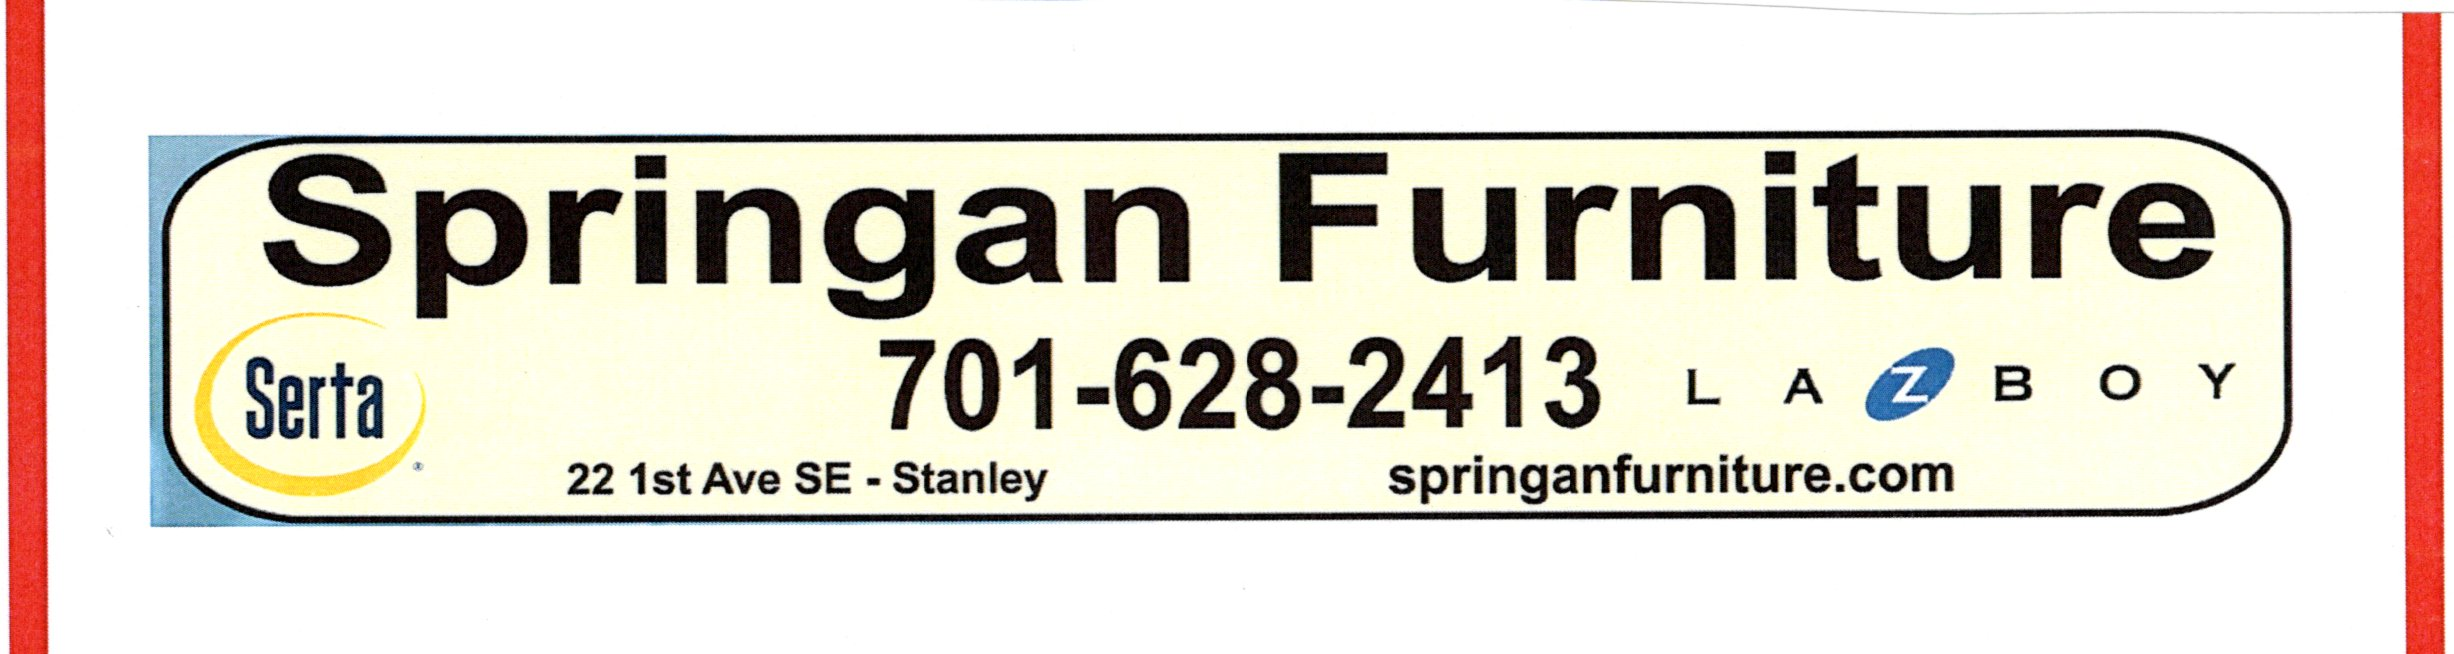 Springan Furniture